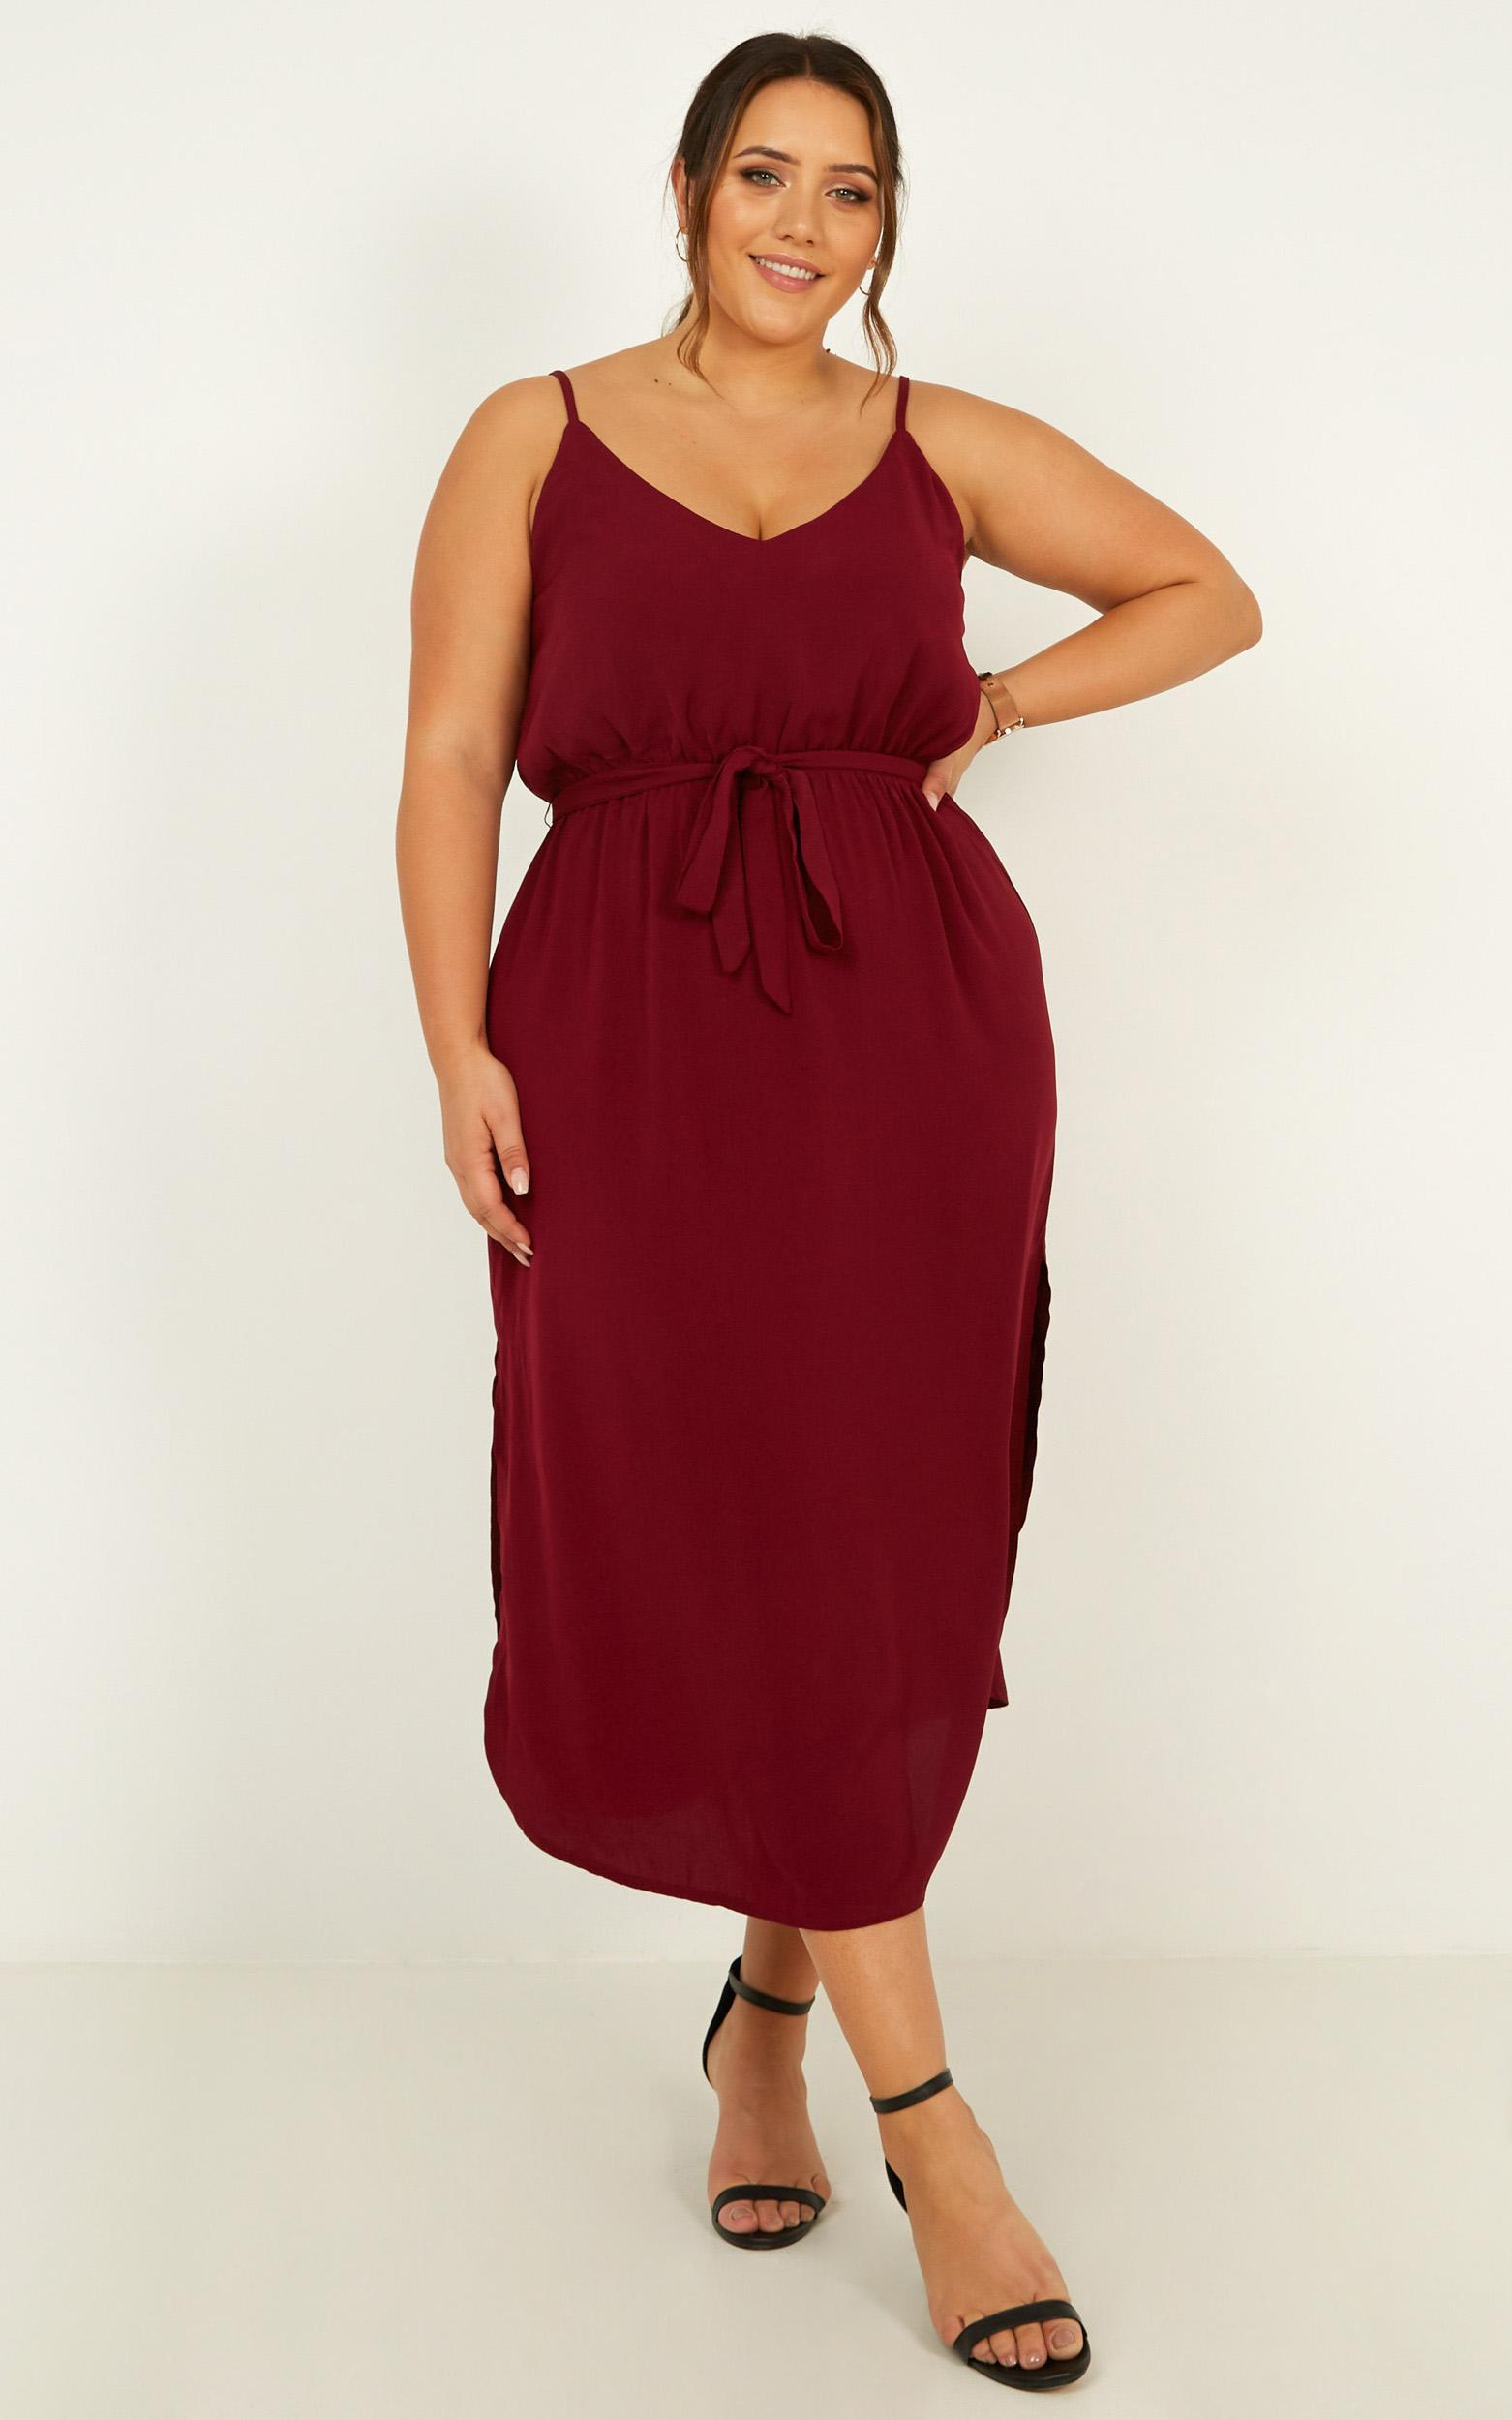 Straight For You Dress in  wine - 20 (XXXXL), Wine, hi-res image number null